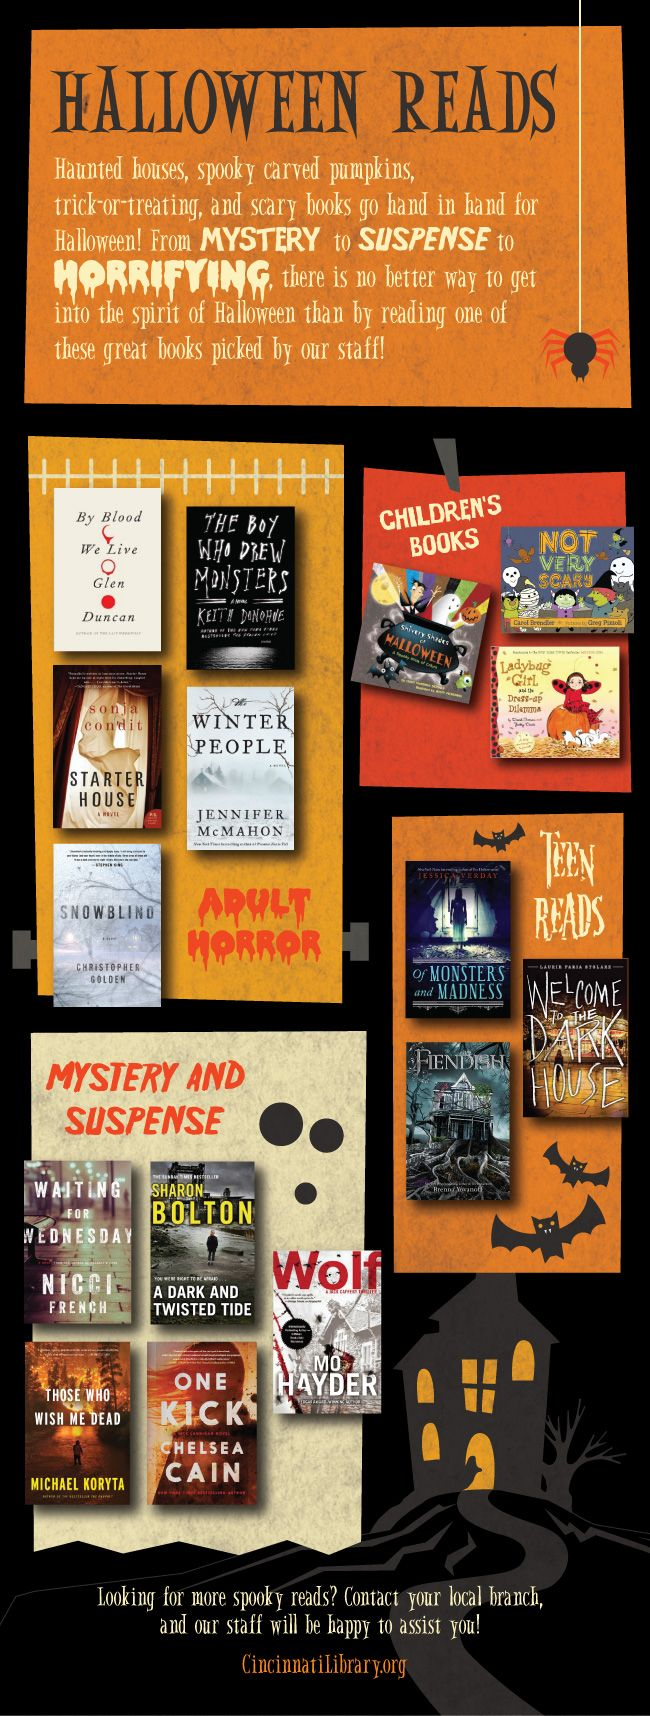 Halloween Reads! From suspenseful to spooky to downright terrifying, get in the spirit of Halloween with these great books picked by our Librarians!